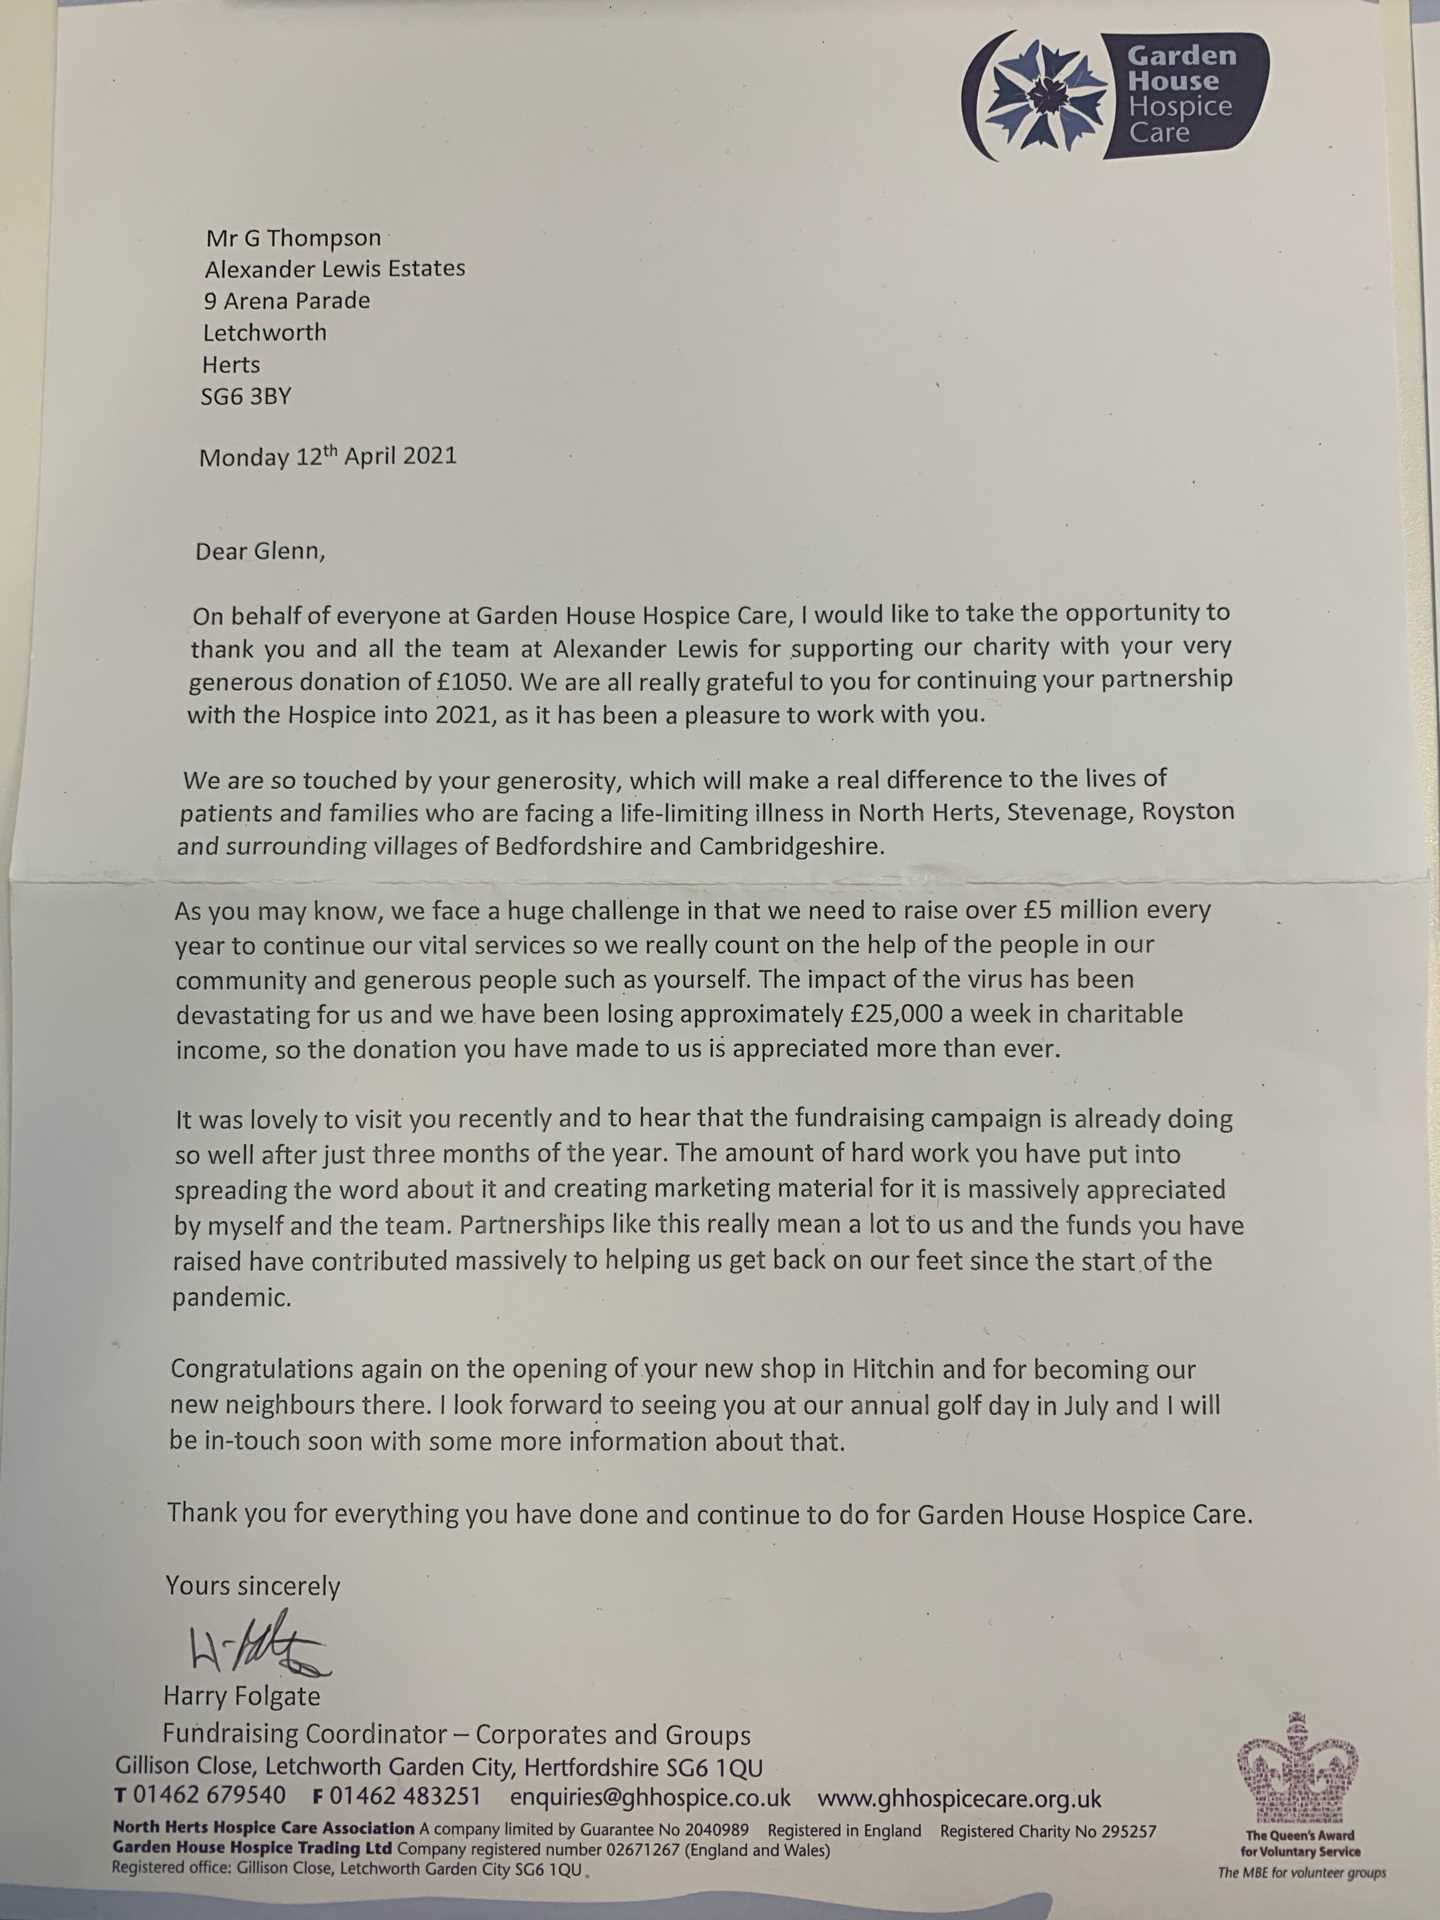 Another letter from the Garden House Hospice